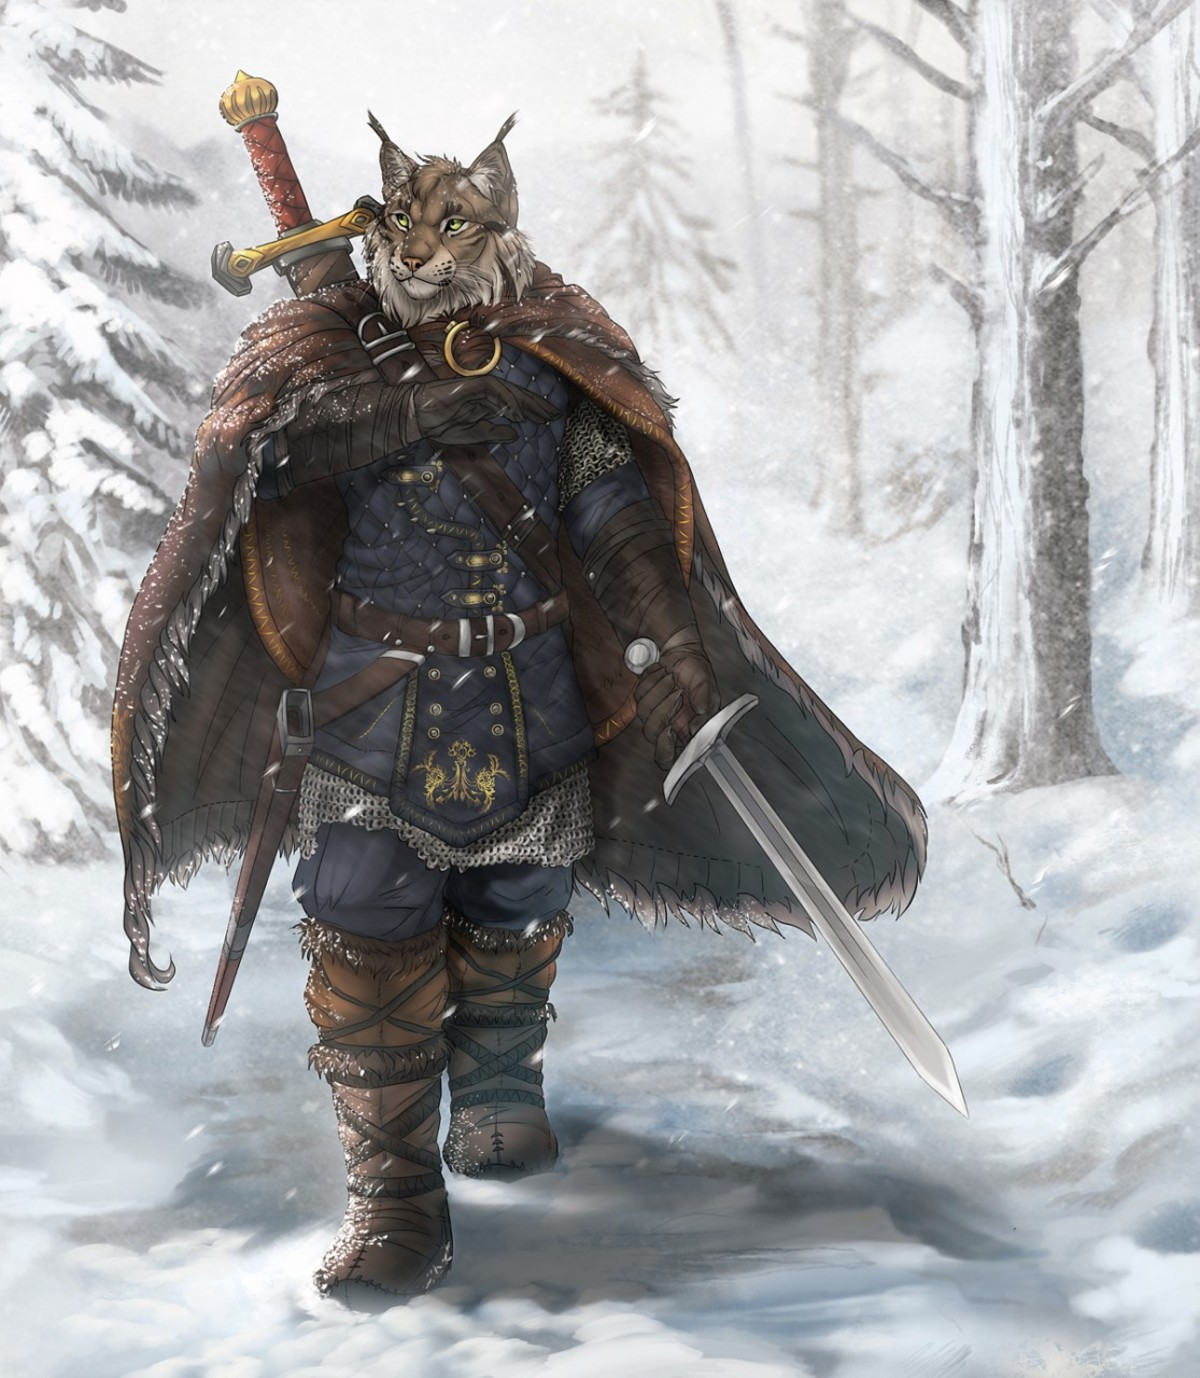 Rogueliger . Edition 94 of Furry Art You Could Show Your Friends. Today's featured artist is Rogueliger, a fantasy artist who really likes to focus